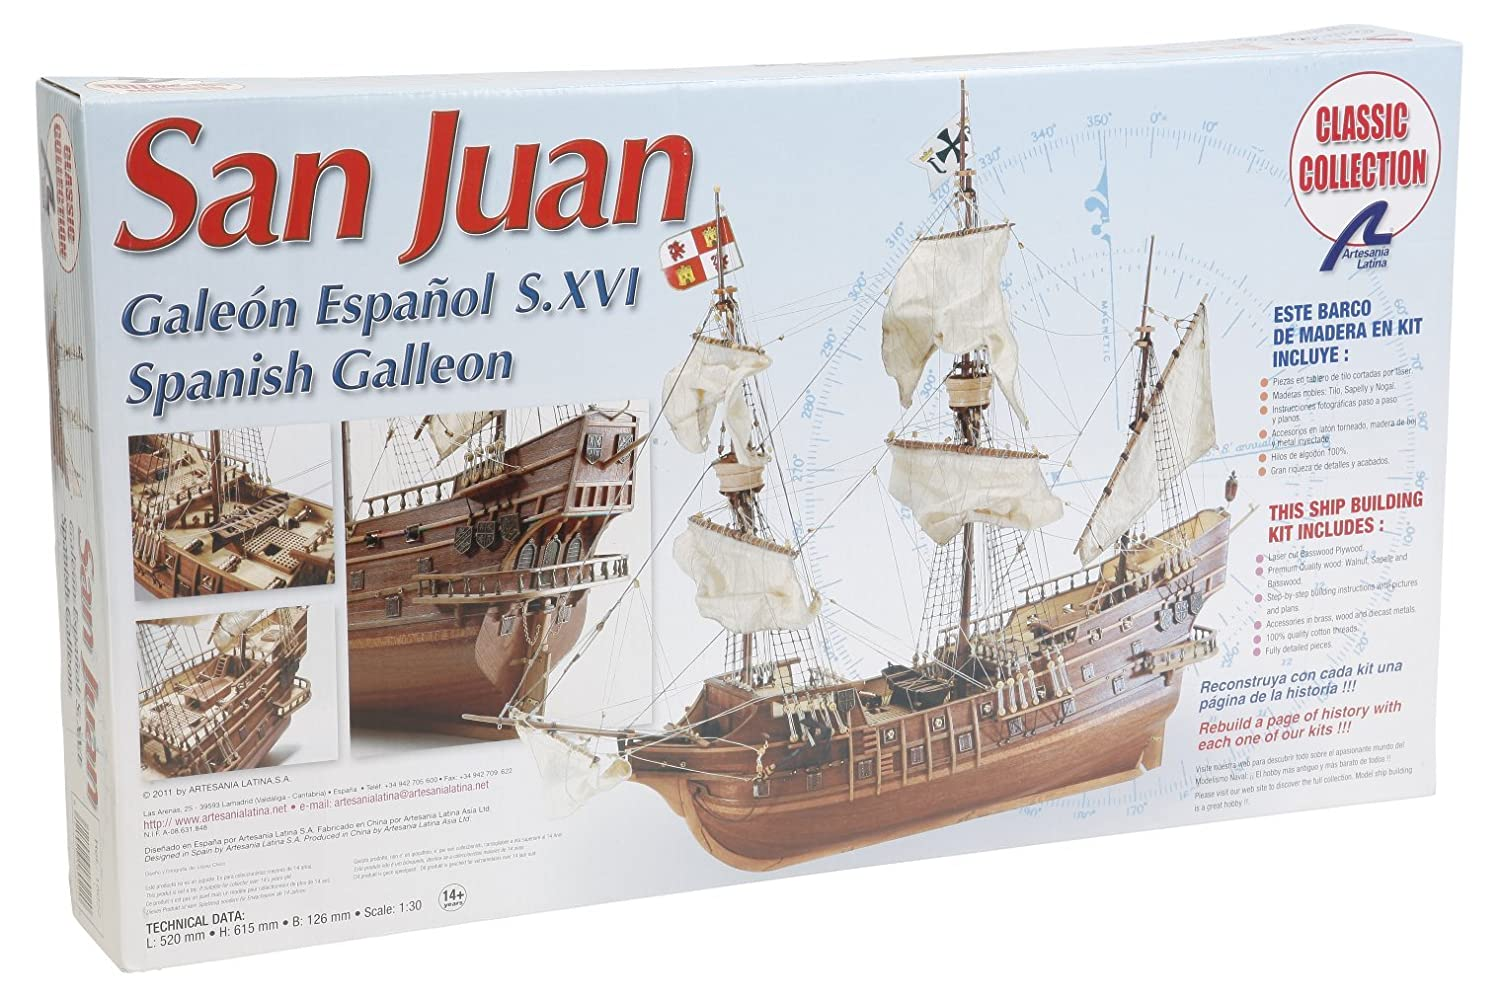 Artesania Latina San Juan Galleon - KLASSISCHE KOLLEKTION, 18022